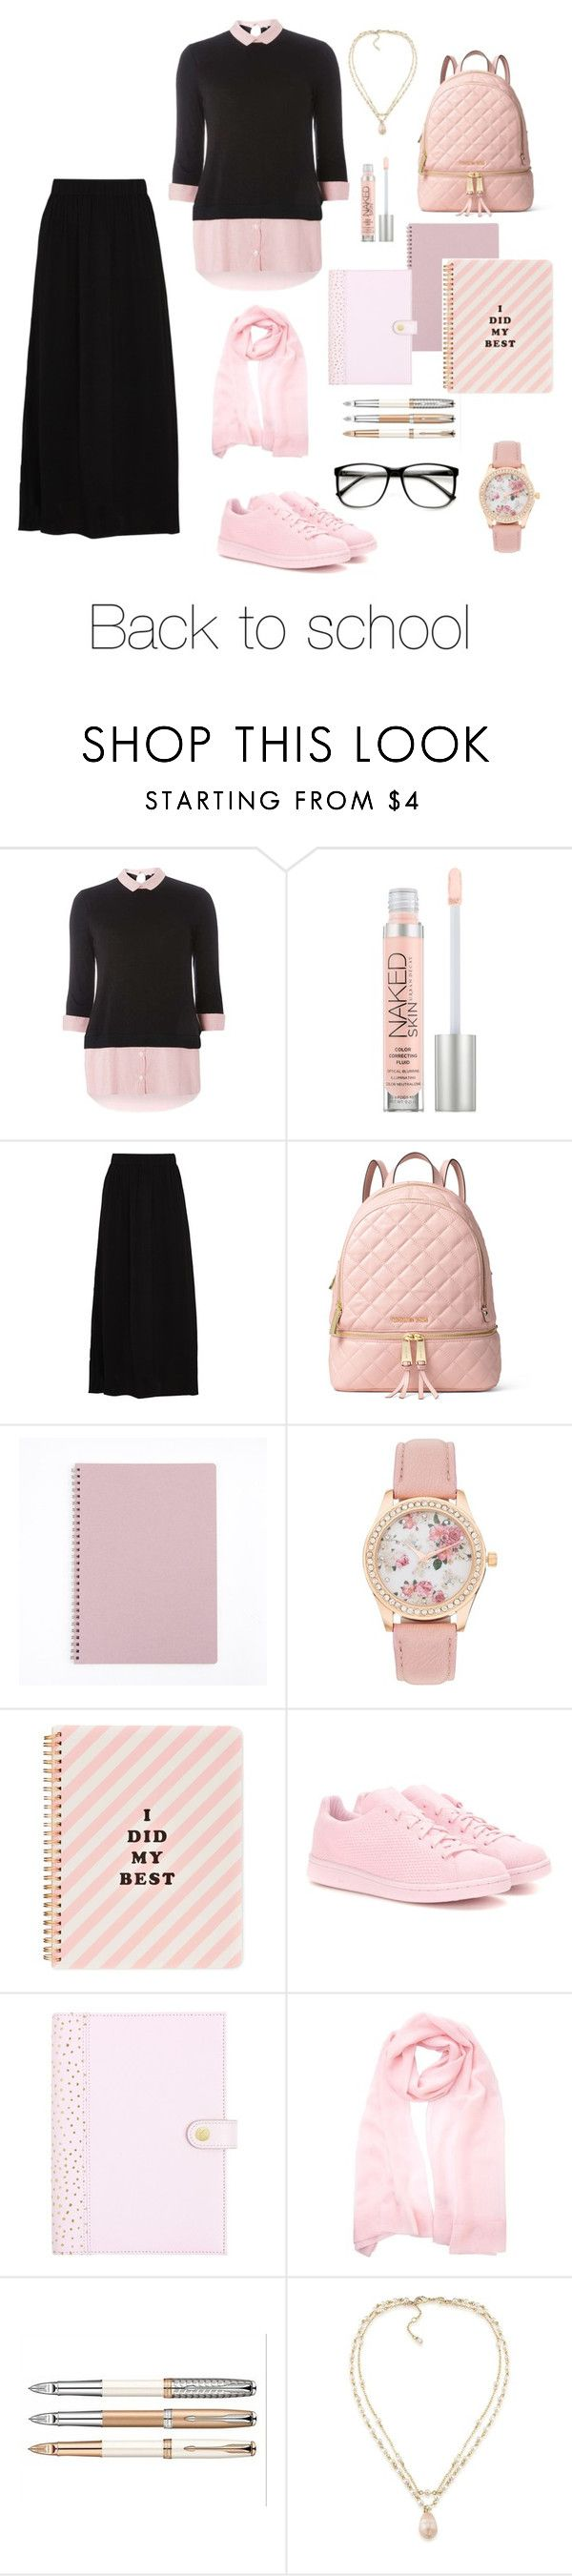 """""""Back to #School"""" by modestandelegant ❤ liked on Polyvore featuring Dorothy Perkins, Urban Decay, American Vintage, MICHAEL Michael Kors, ban.do, adidas Originals, Carolee, ZeroUV, BackToSchool and school"""